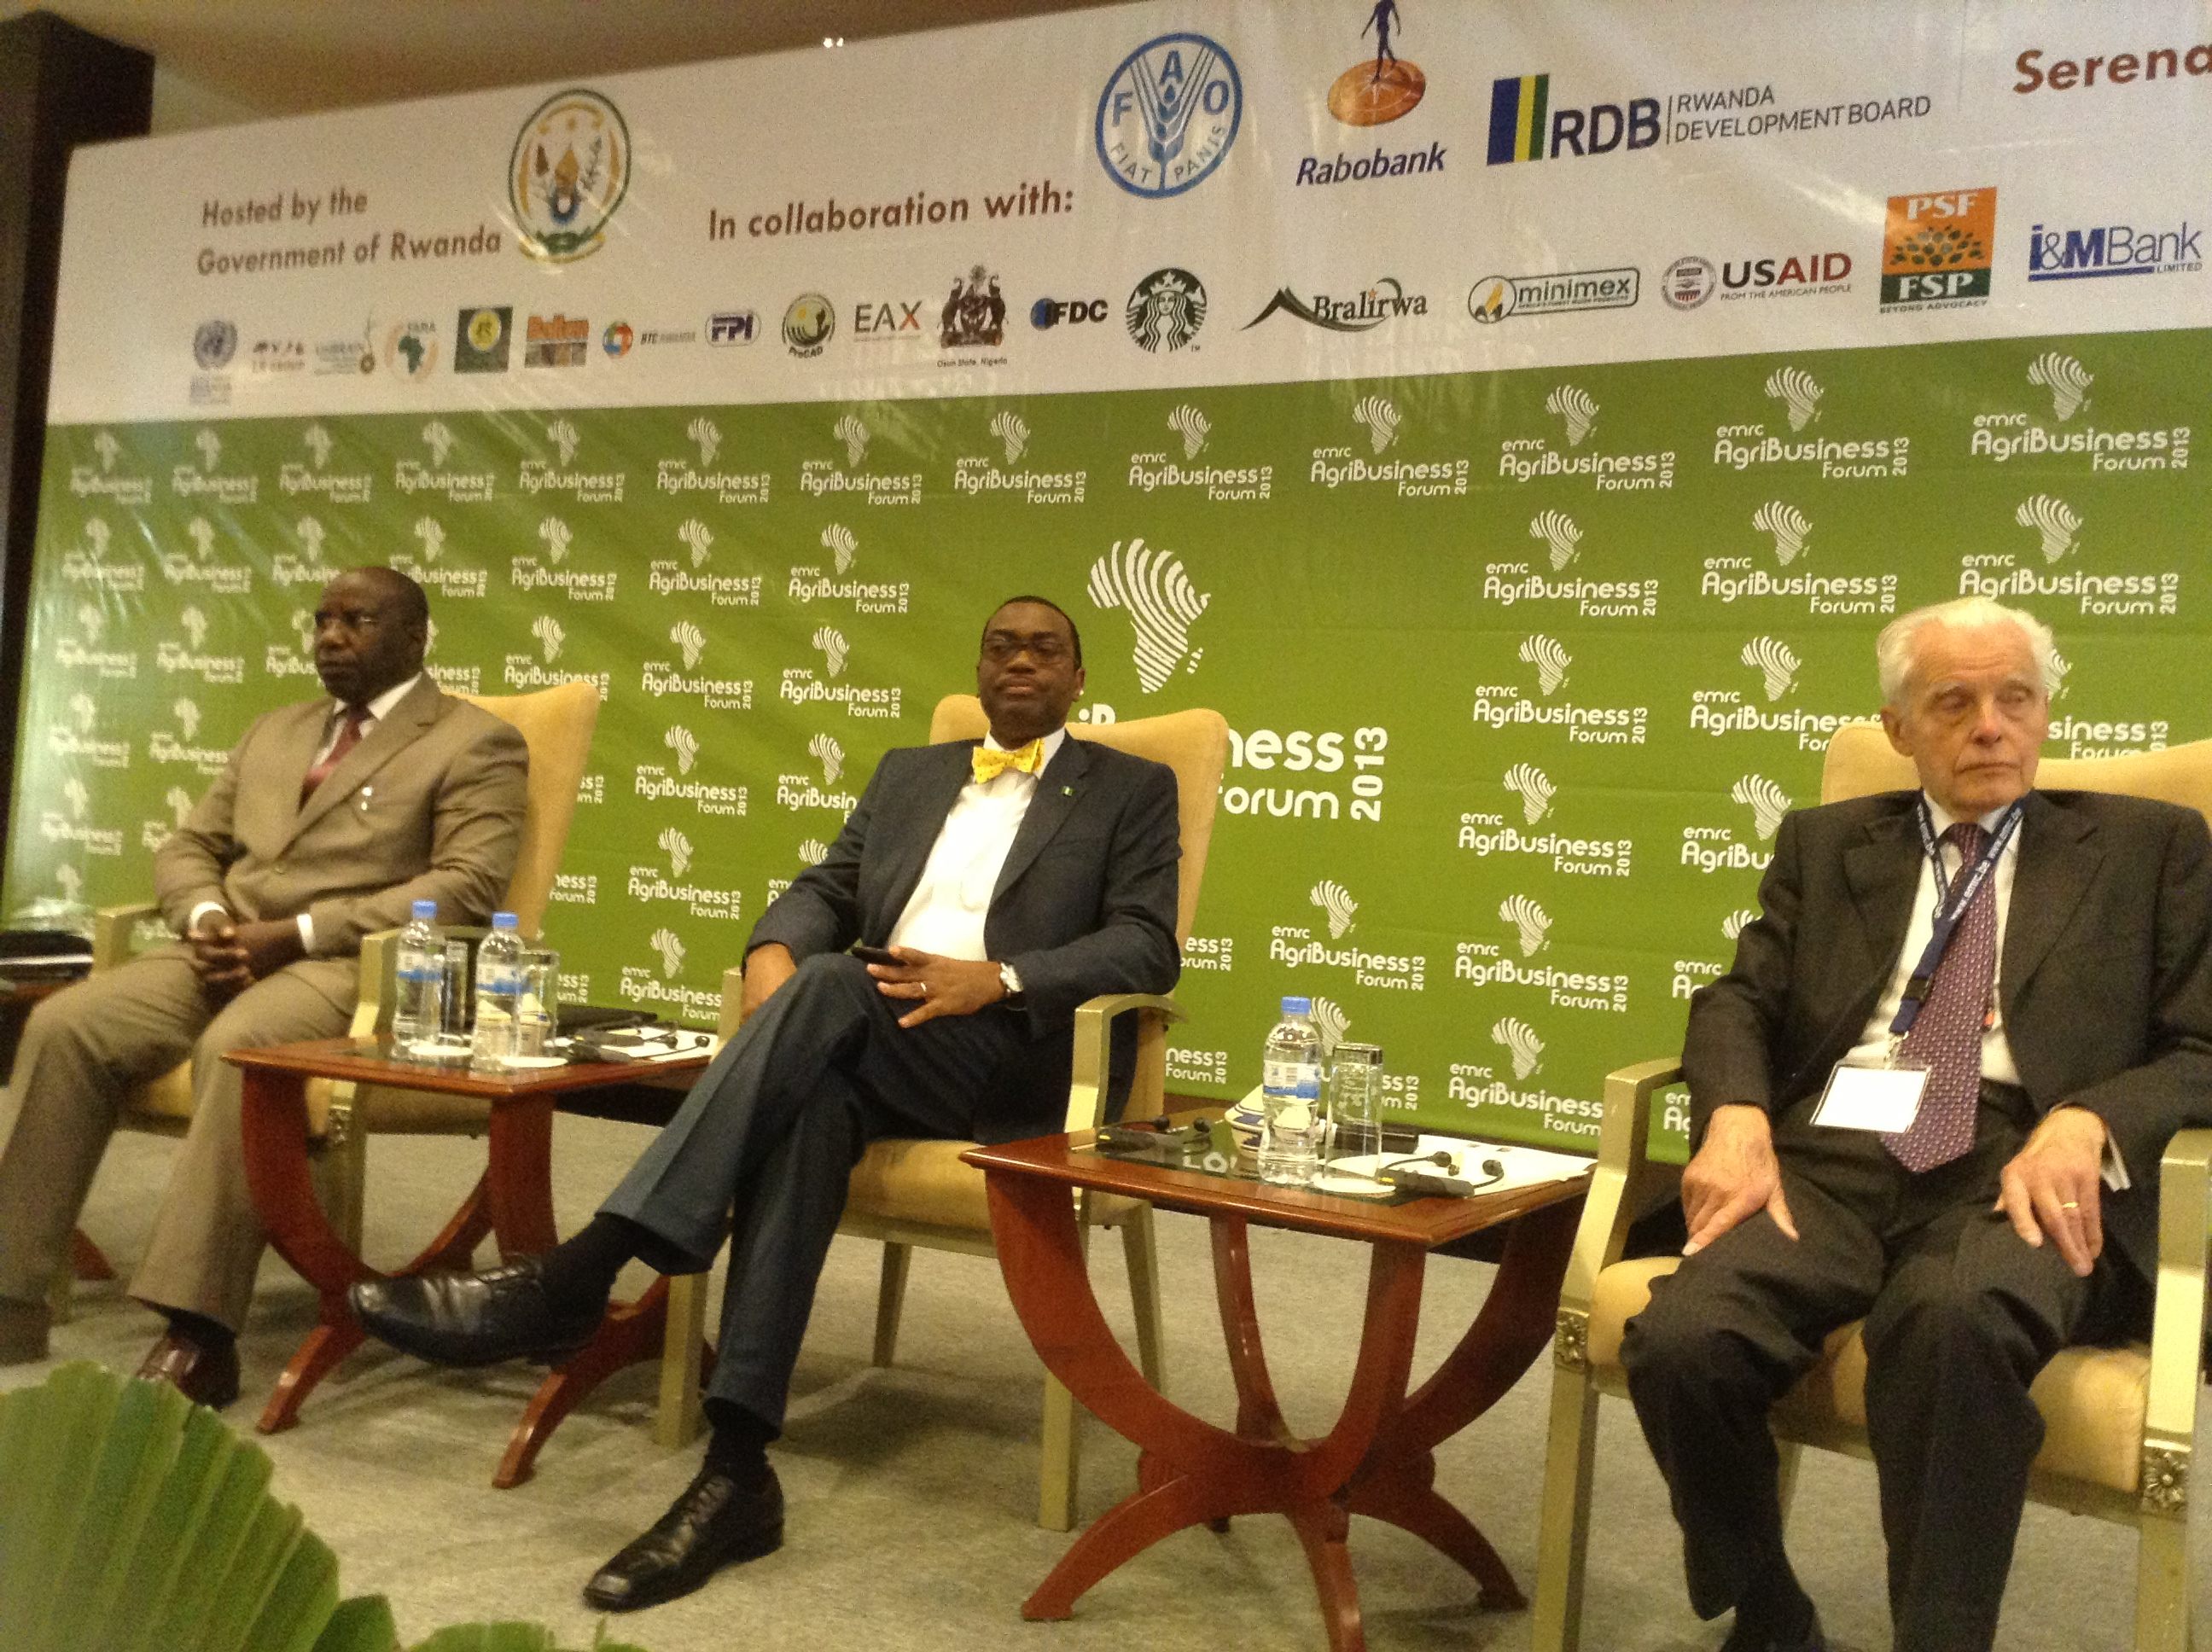 Nigeria's Agriculture Minister Graces The 2013 AgriBusiness Forum in Rwanda